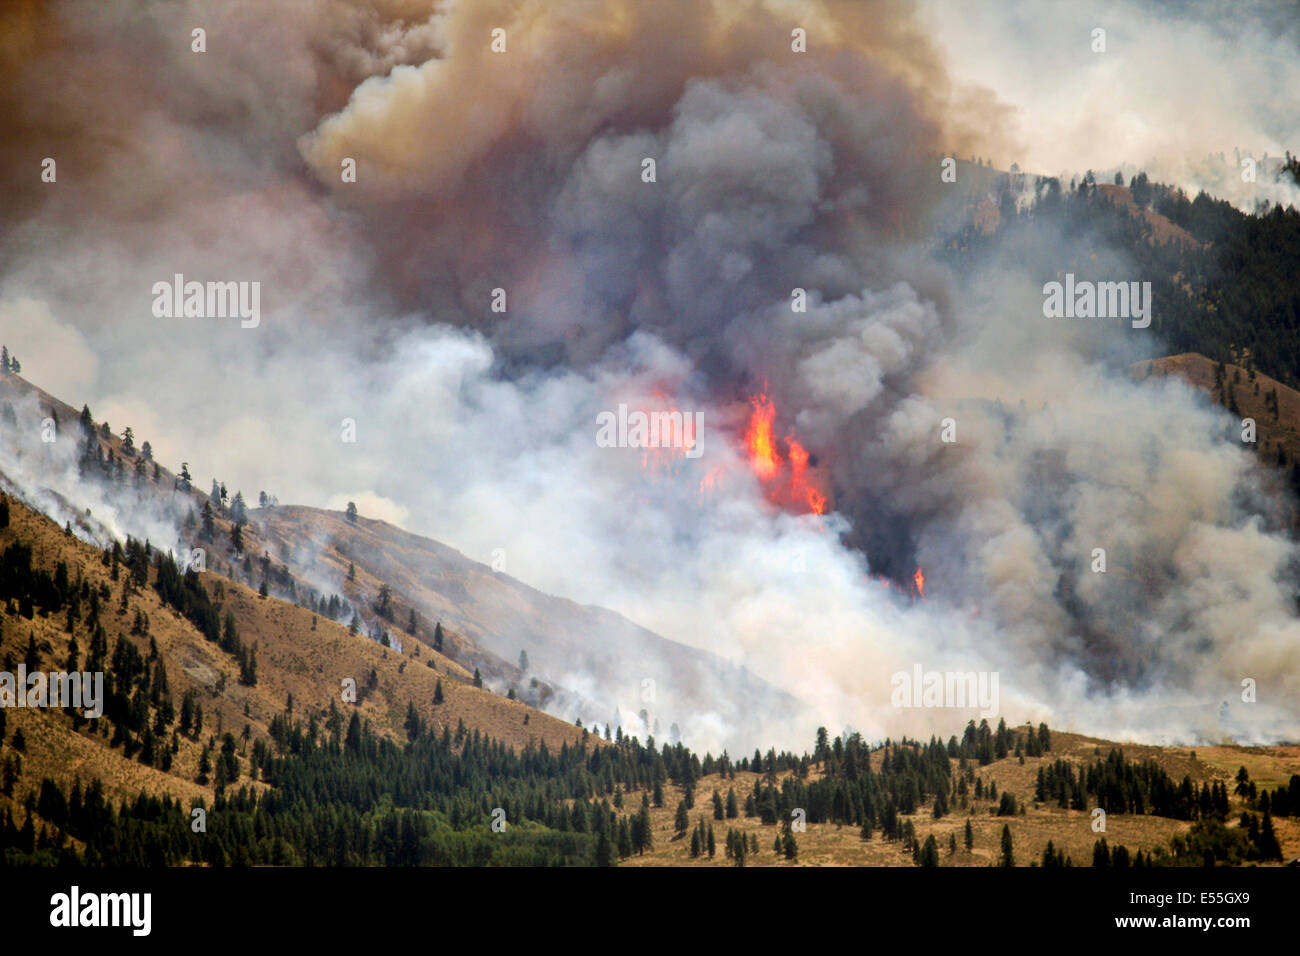 The Carlton Complex Fire burns out of control July 18, 2014 near Winthrop, Washington. The wildfire has consumed - Stock Image